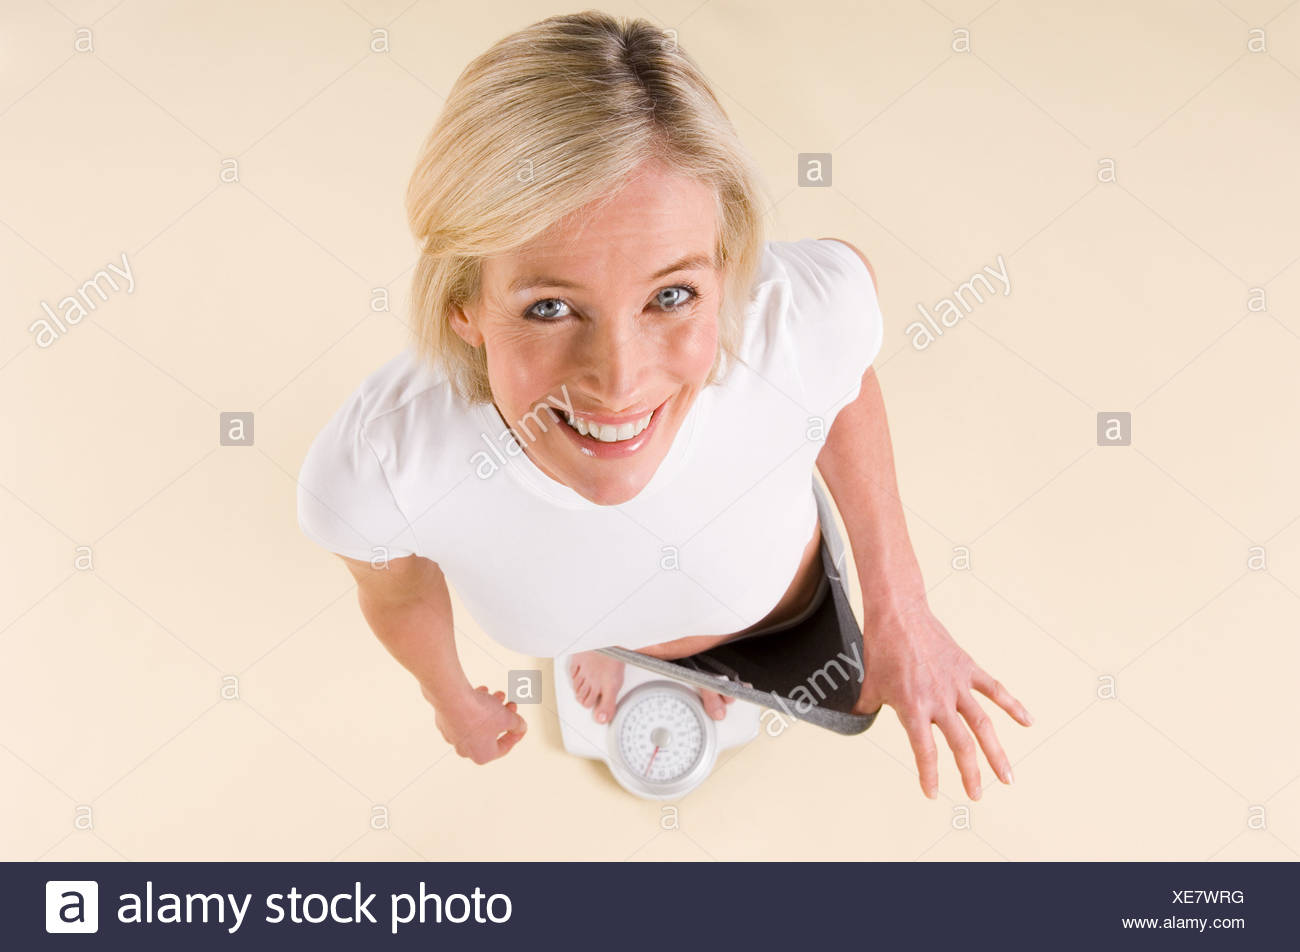 Portrait of a woman who has lost weight - Stock Image